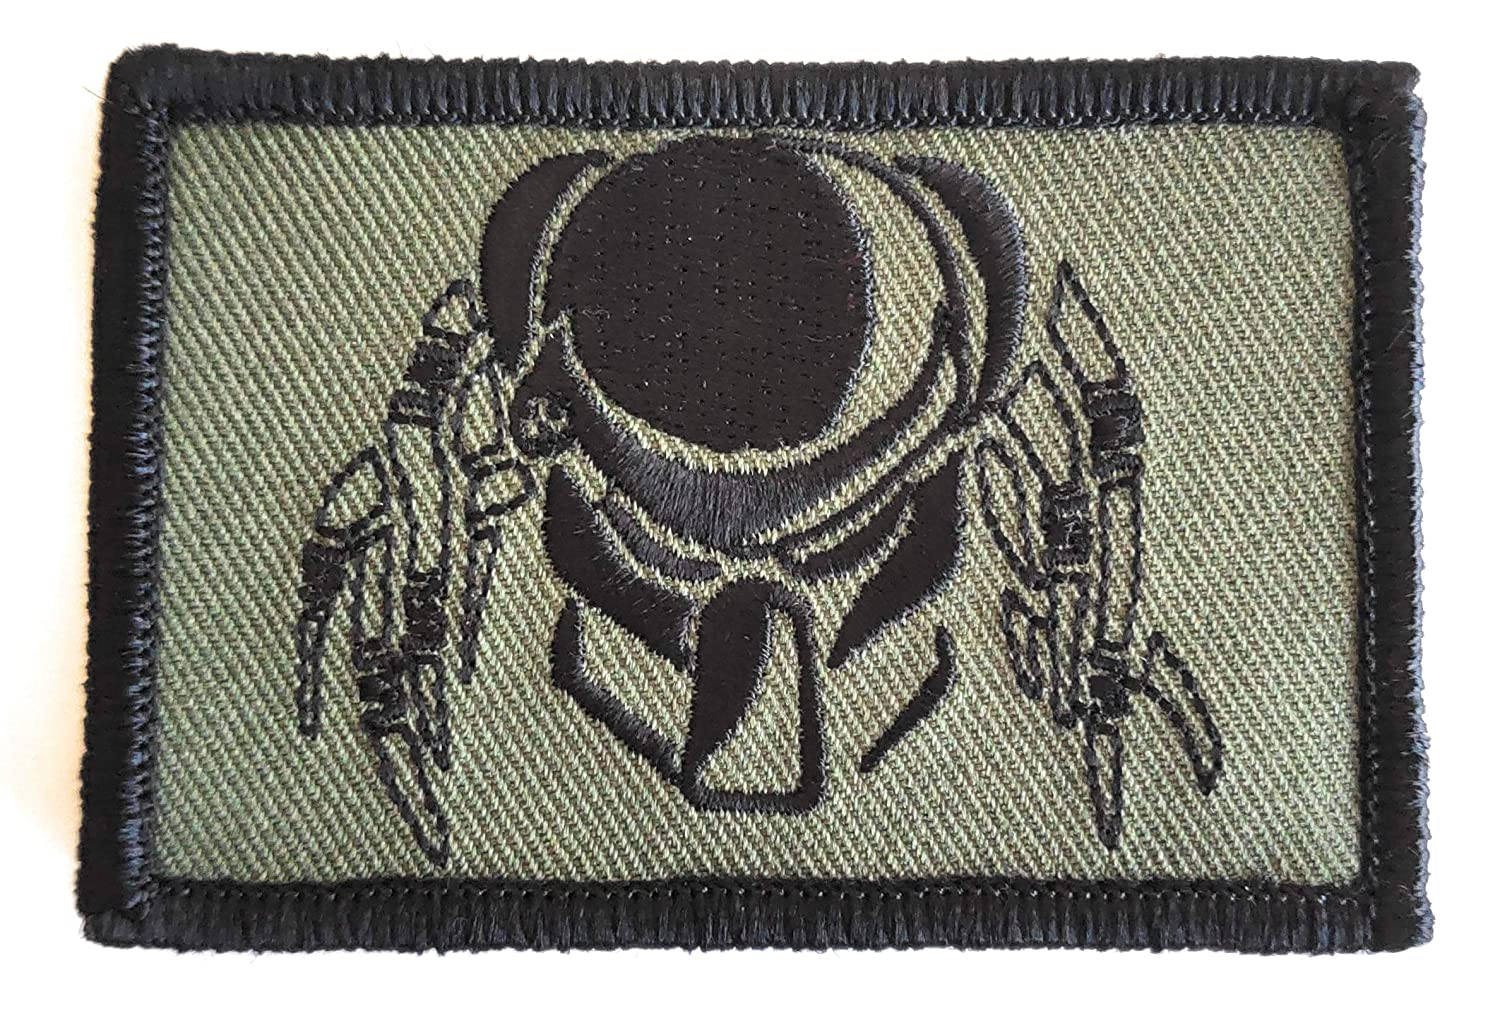 Tactical Predator Camo Green Operator Morale Gear Patch Depredador Parche T/áctico Bordado Titan One Europe